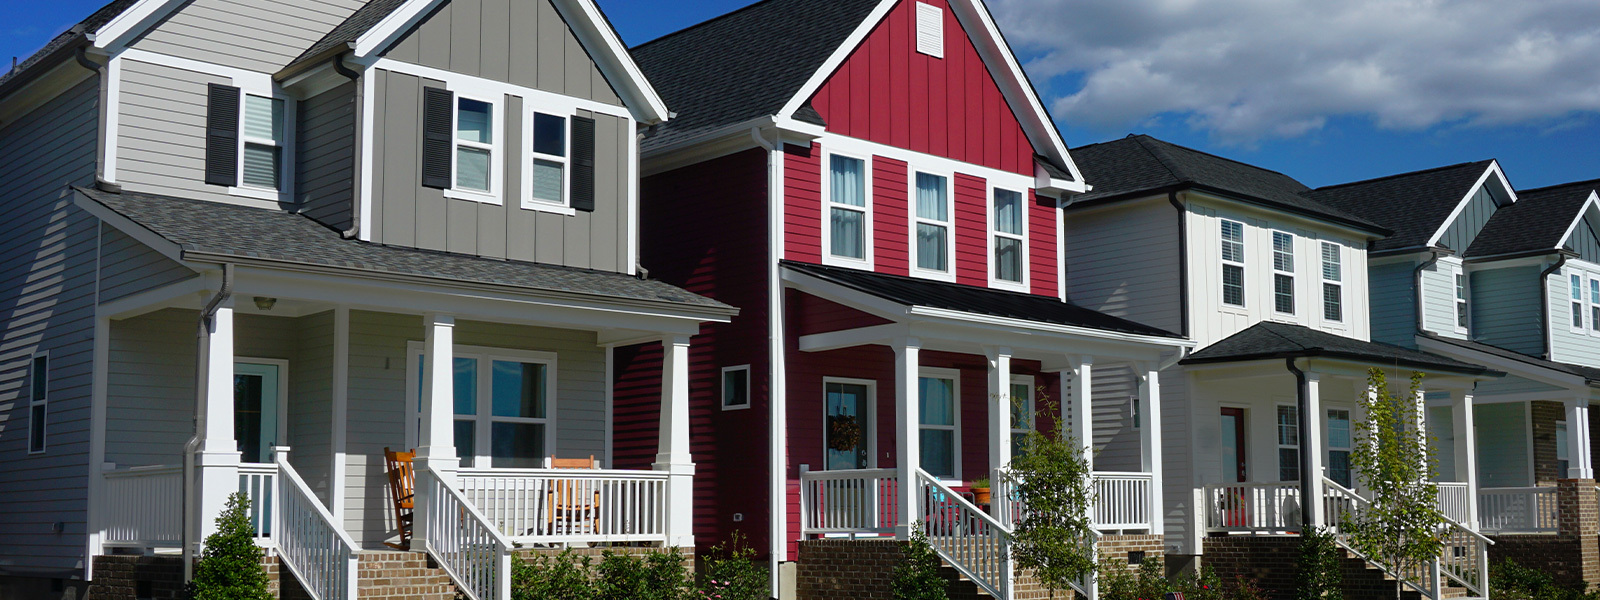 Row of houses with porches